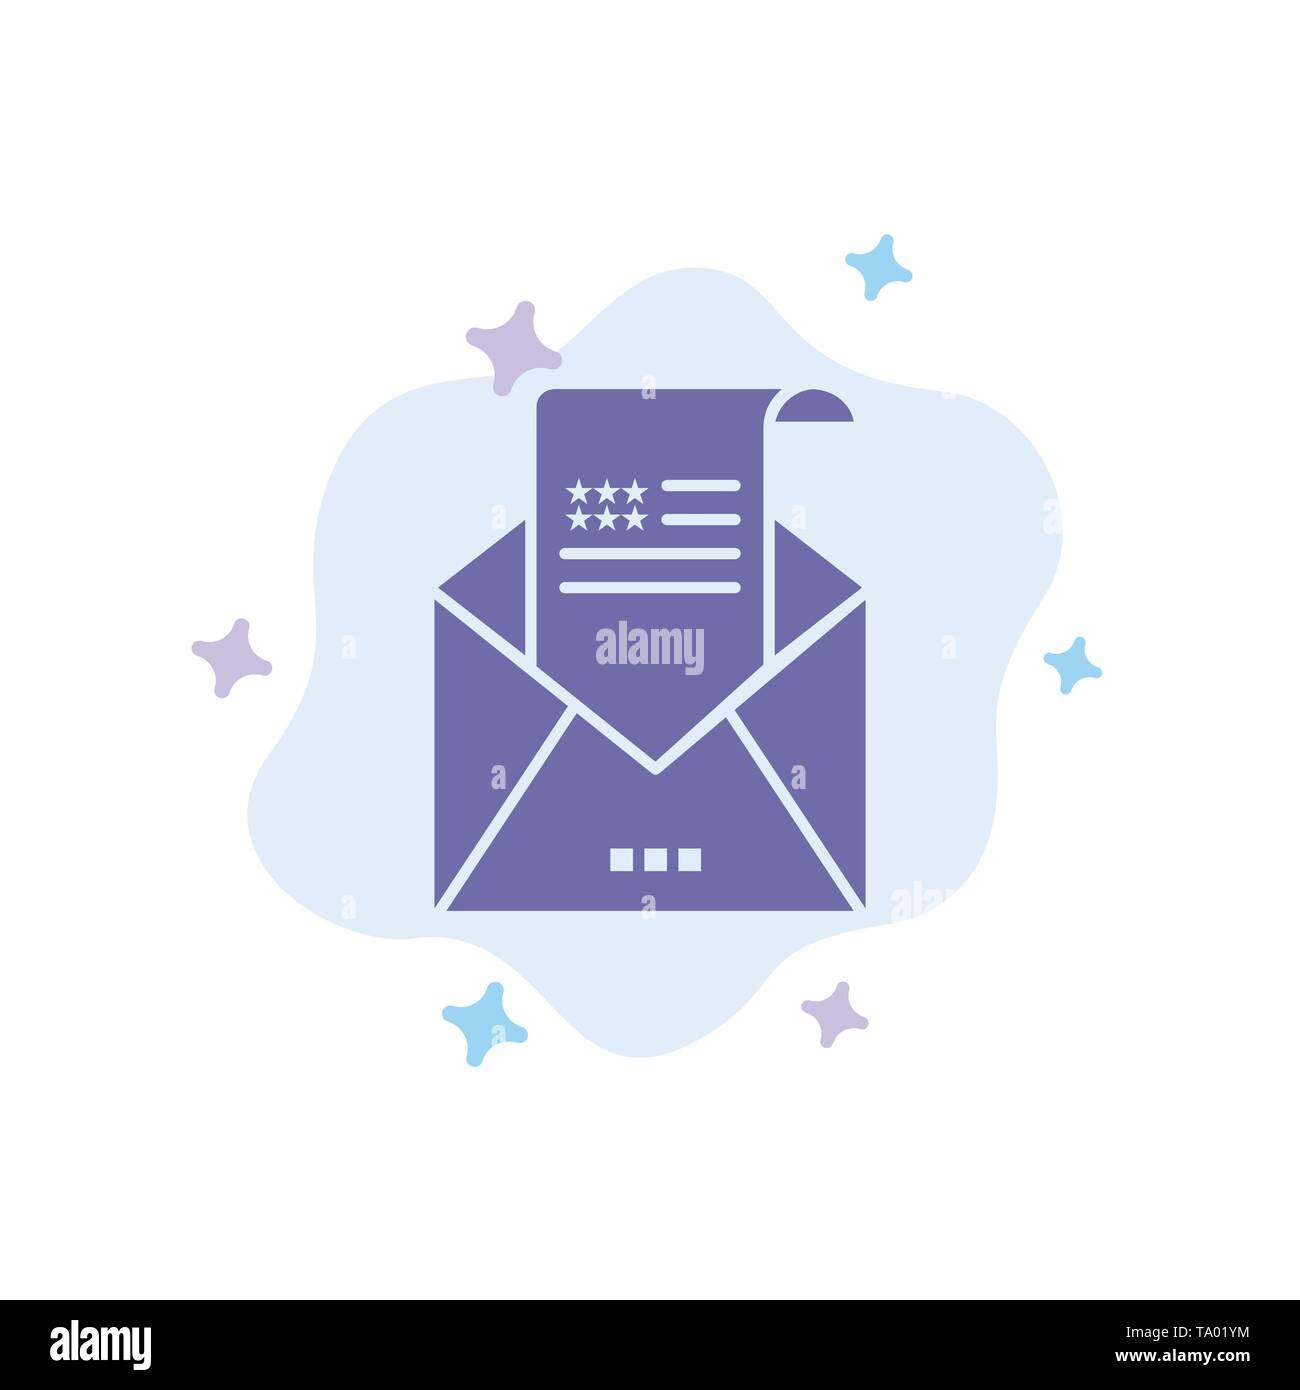 Email, Envelope, Greeting, Invitation, Mail Blue Icon on Abstract Cloud Background - Stock Image